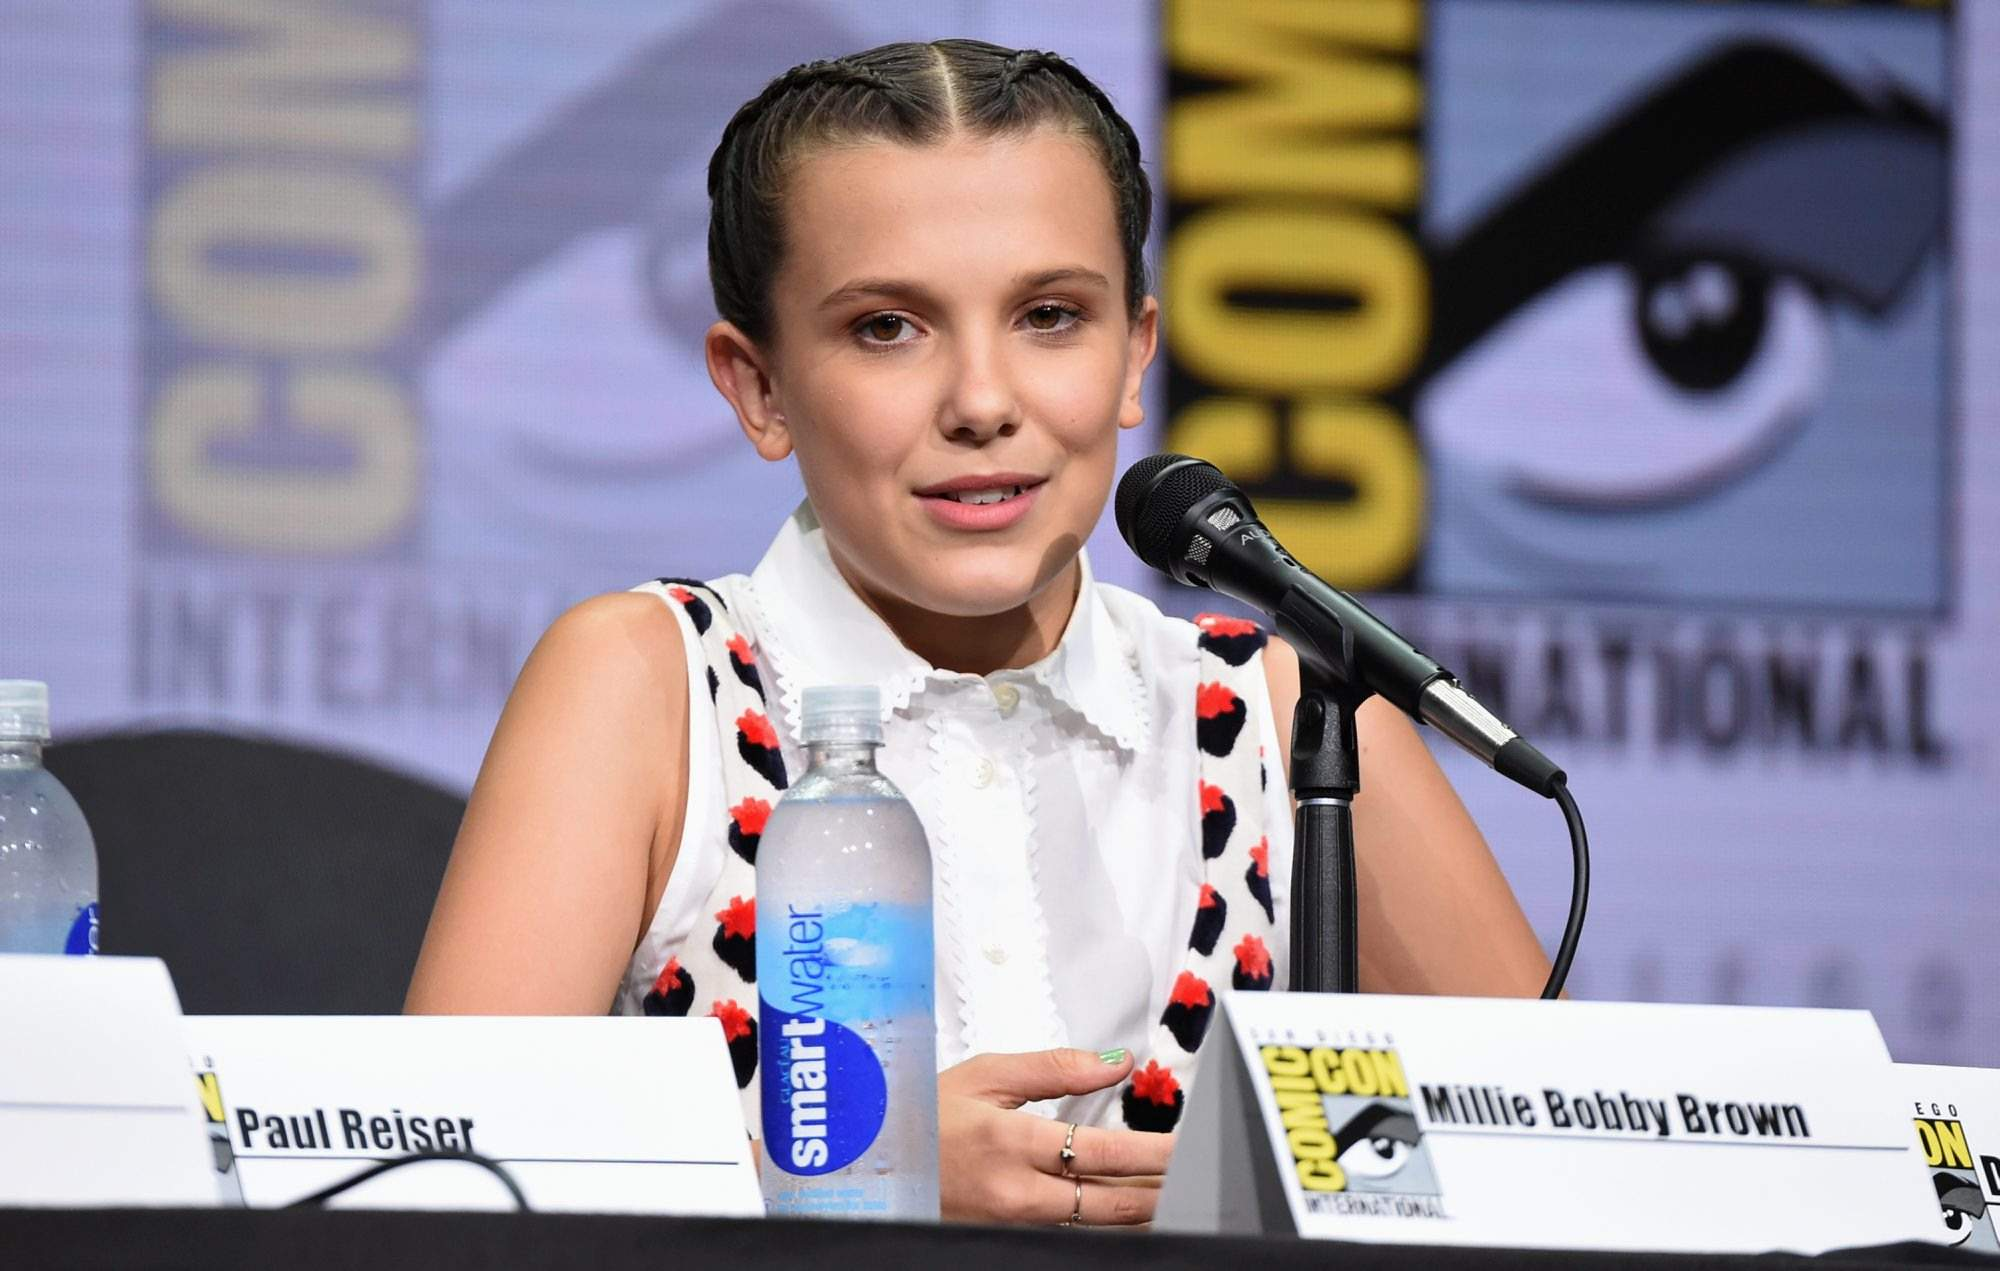 Durango Colorado Creators, cast of 'Stranger Things' debut season 2 trailer News 60x60 image